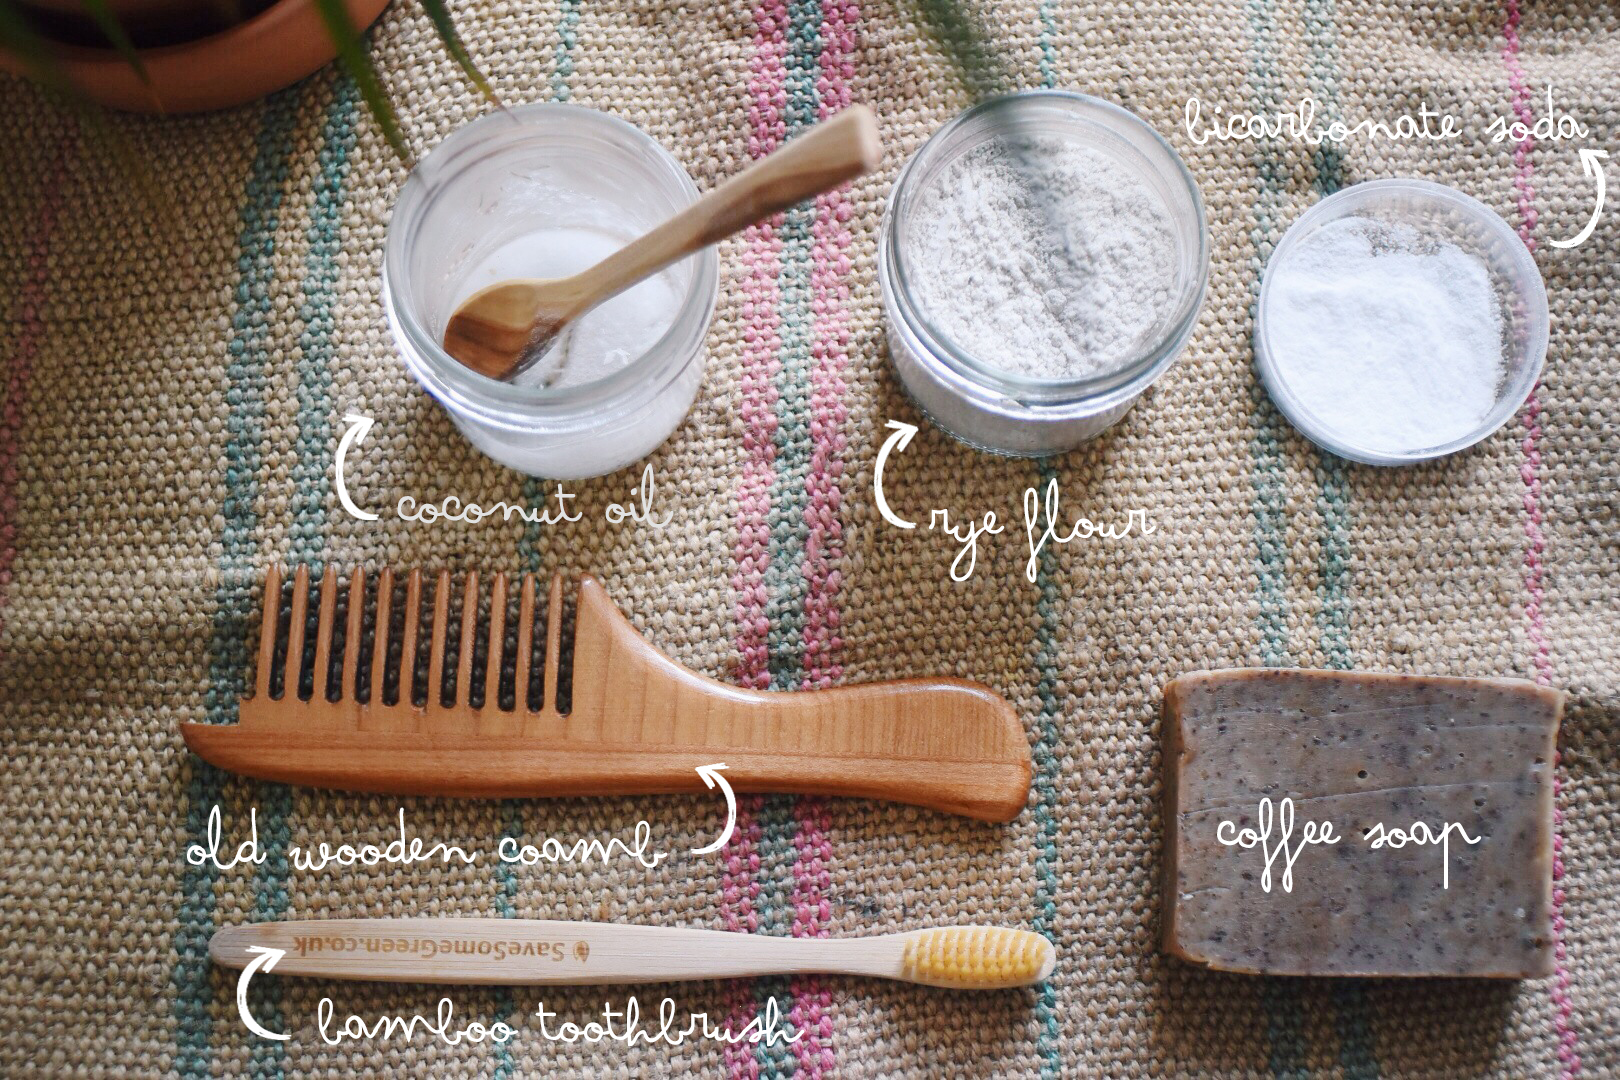 Simplifying my life: Zero waste toiletries